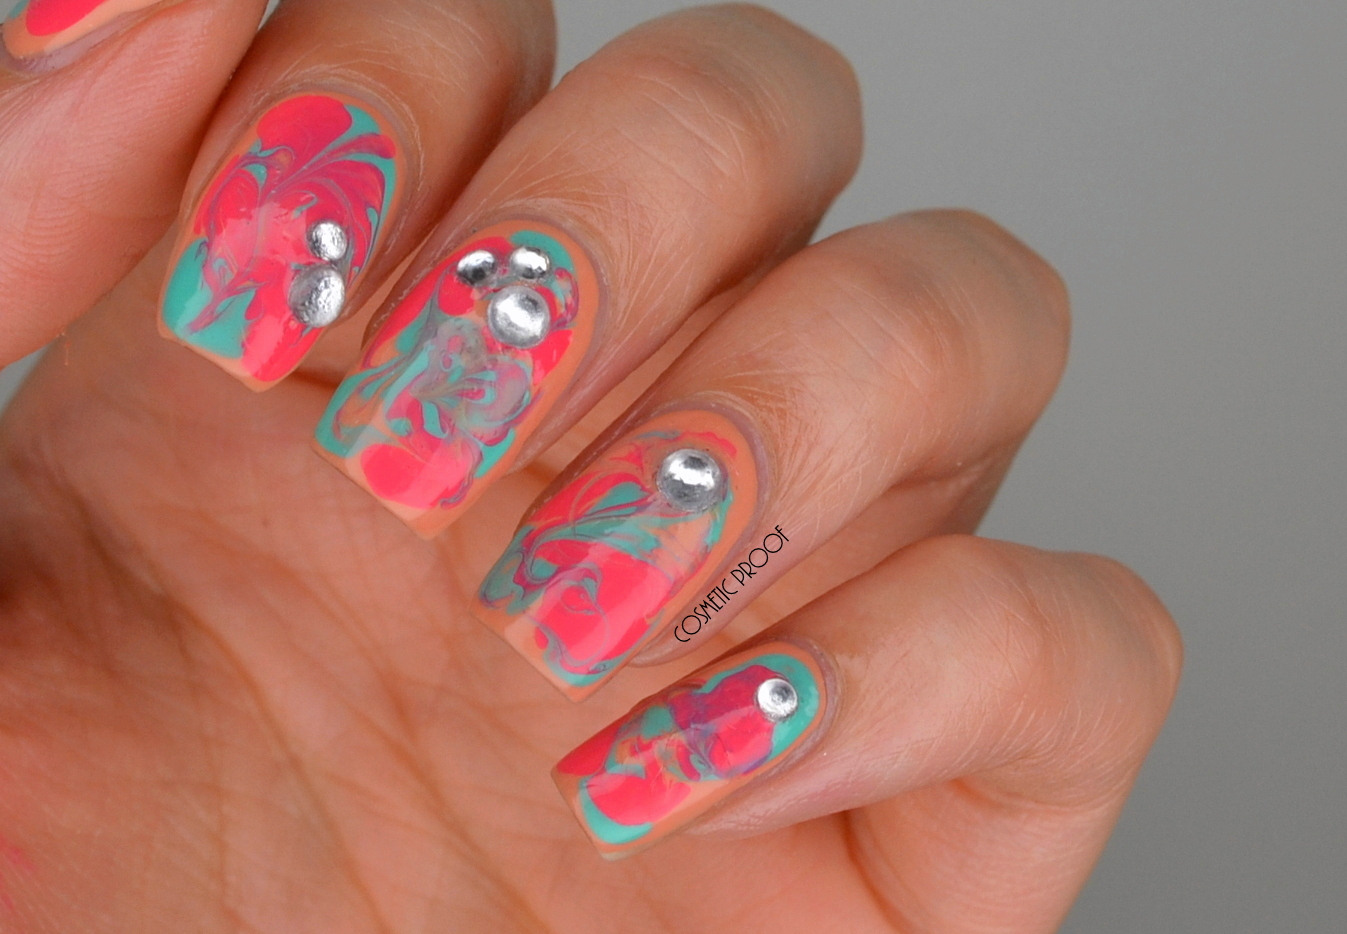 Nails Bcd Nail Art Challenge Week 13 Dry Water Marble With The